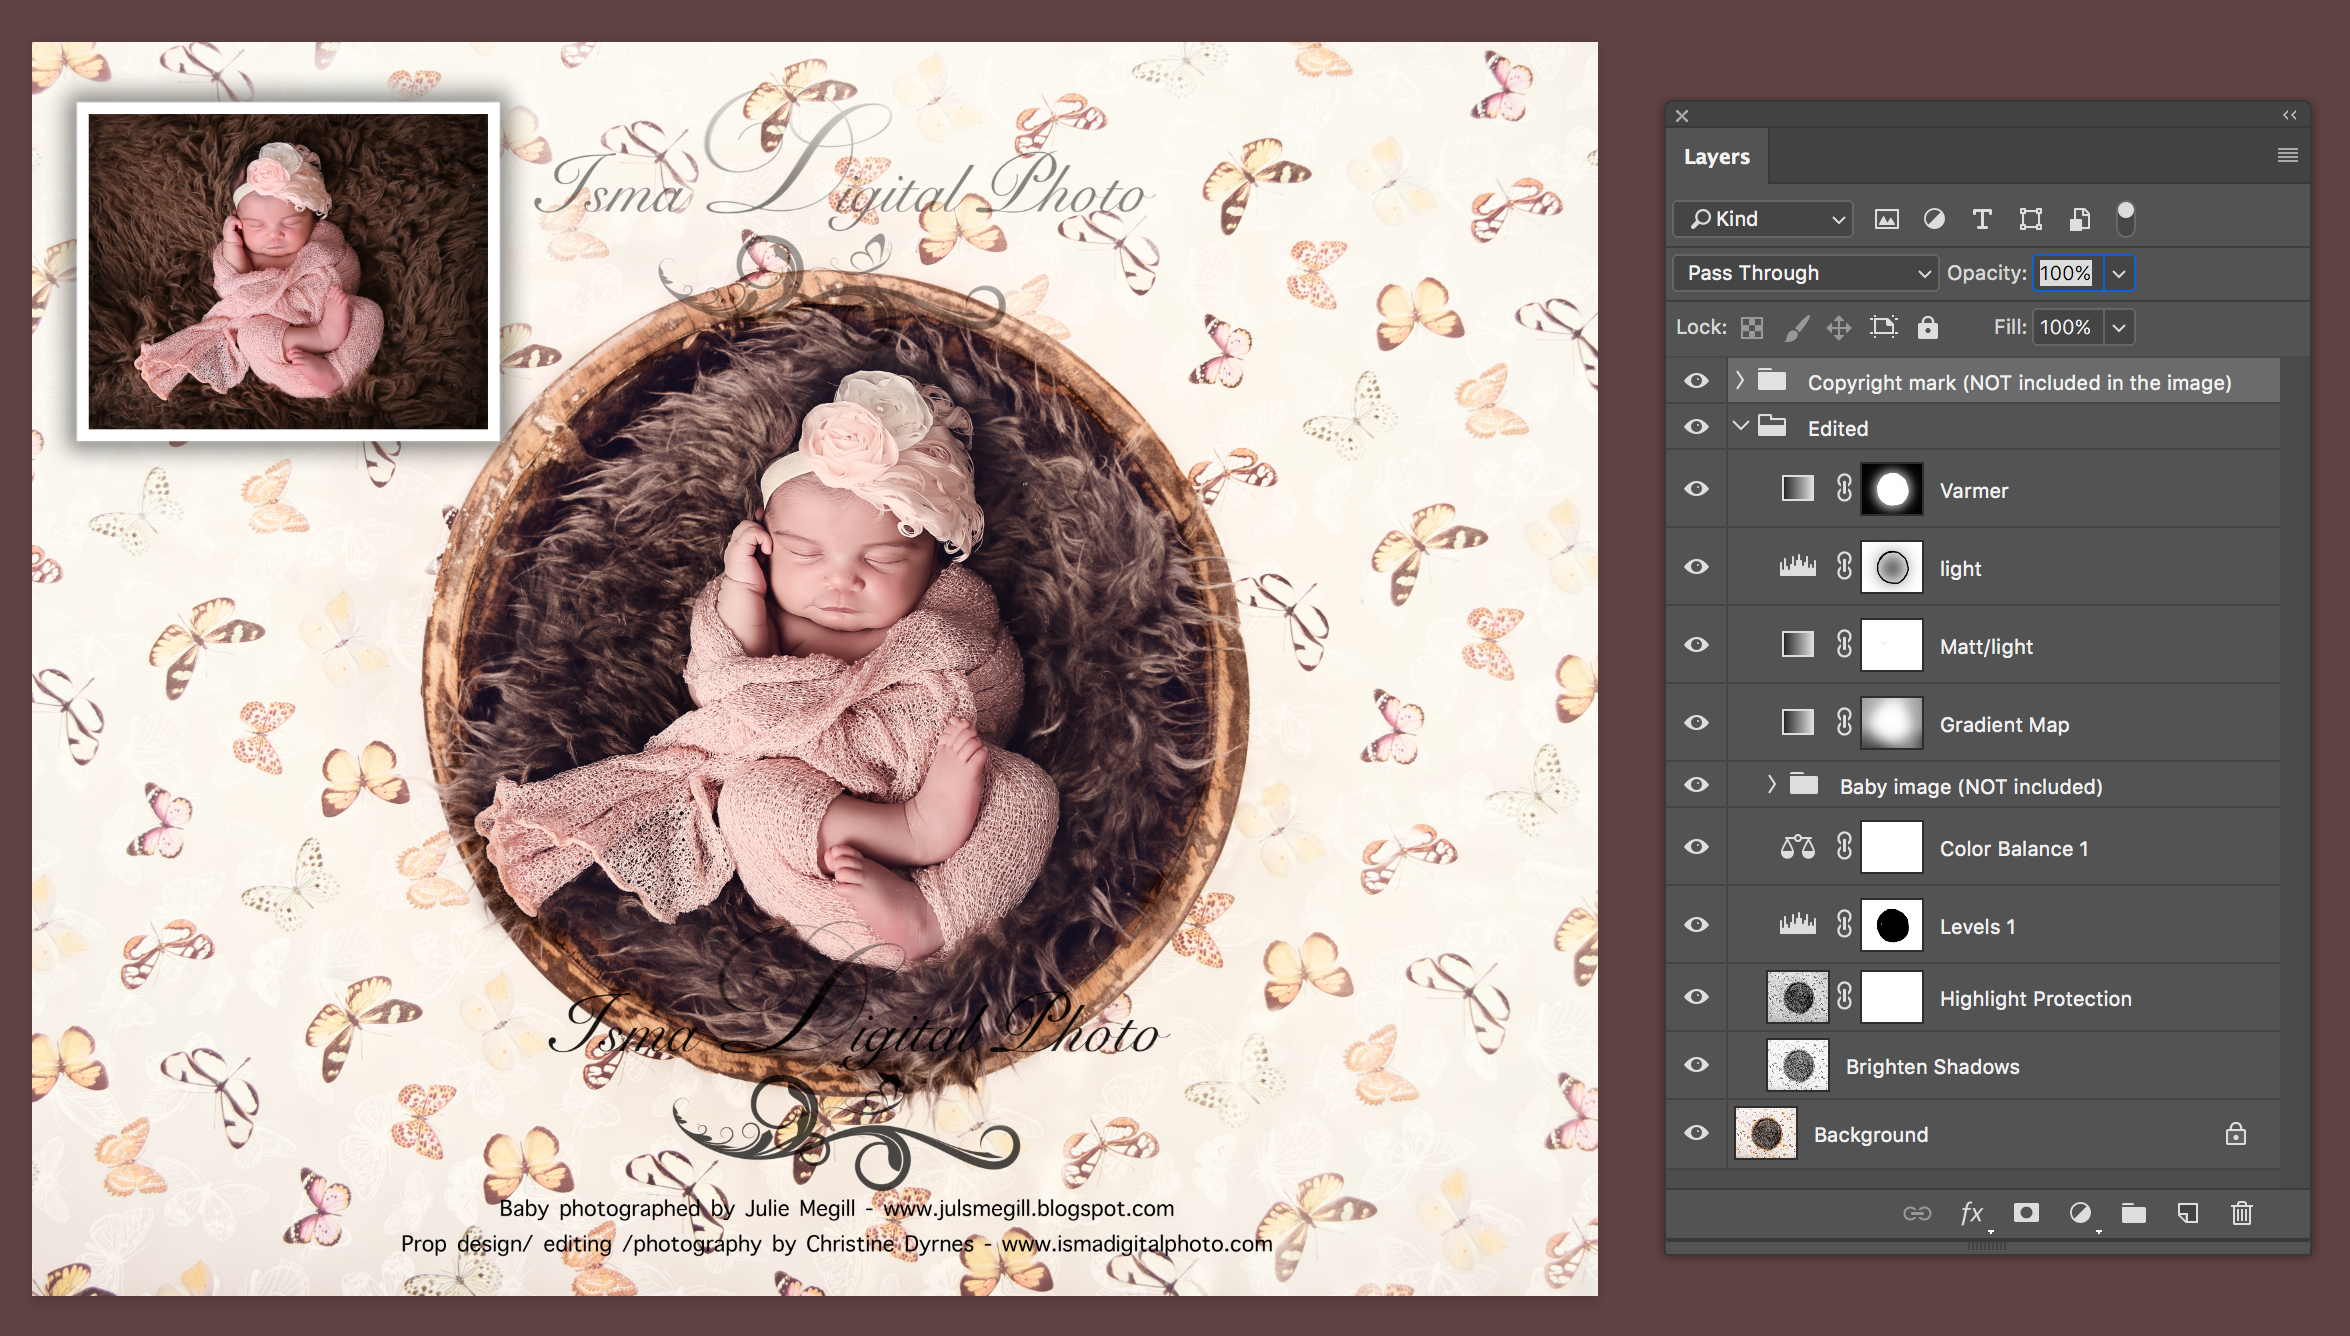 Digital Backdrop /Props for Newborn /baby photography - High resolution digital backdrop /background - Two JPG and one PSD file with layers